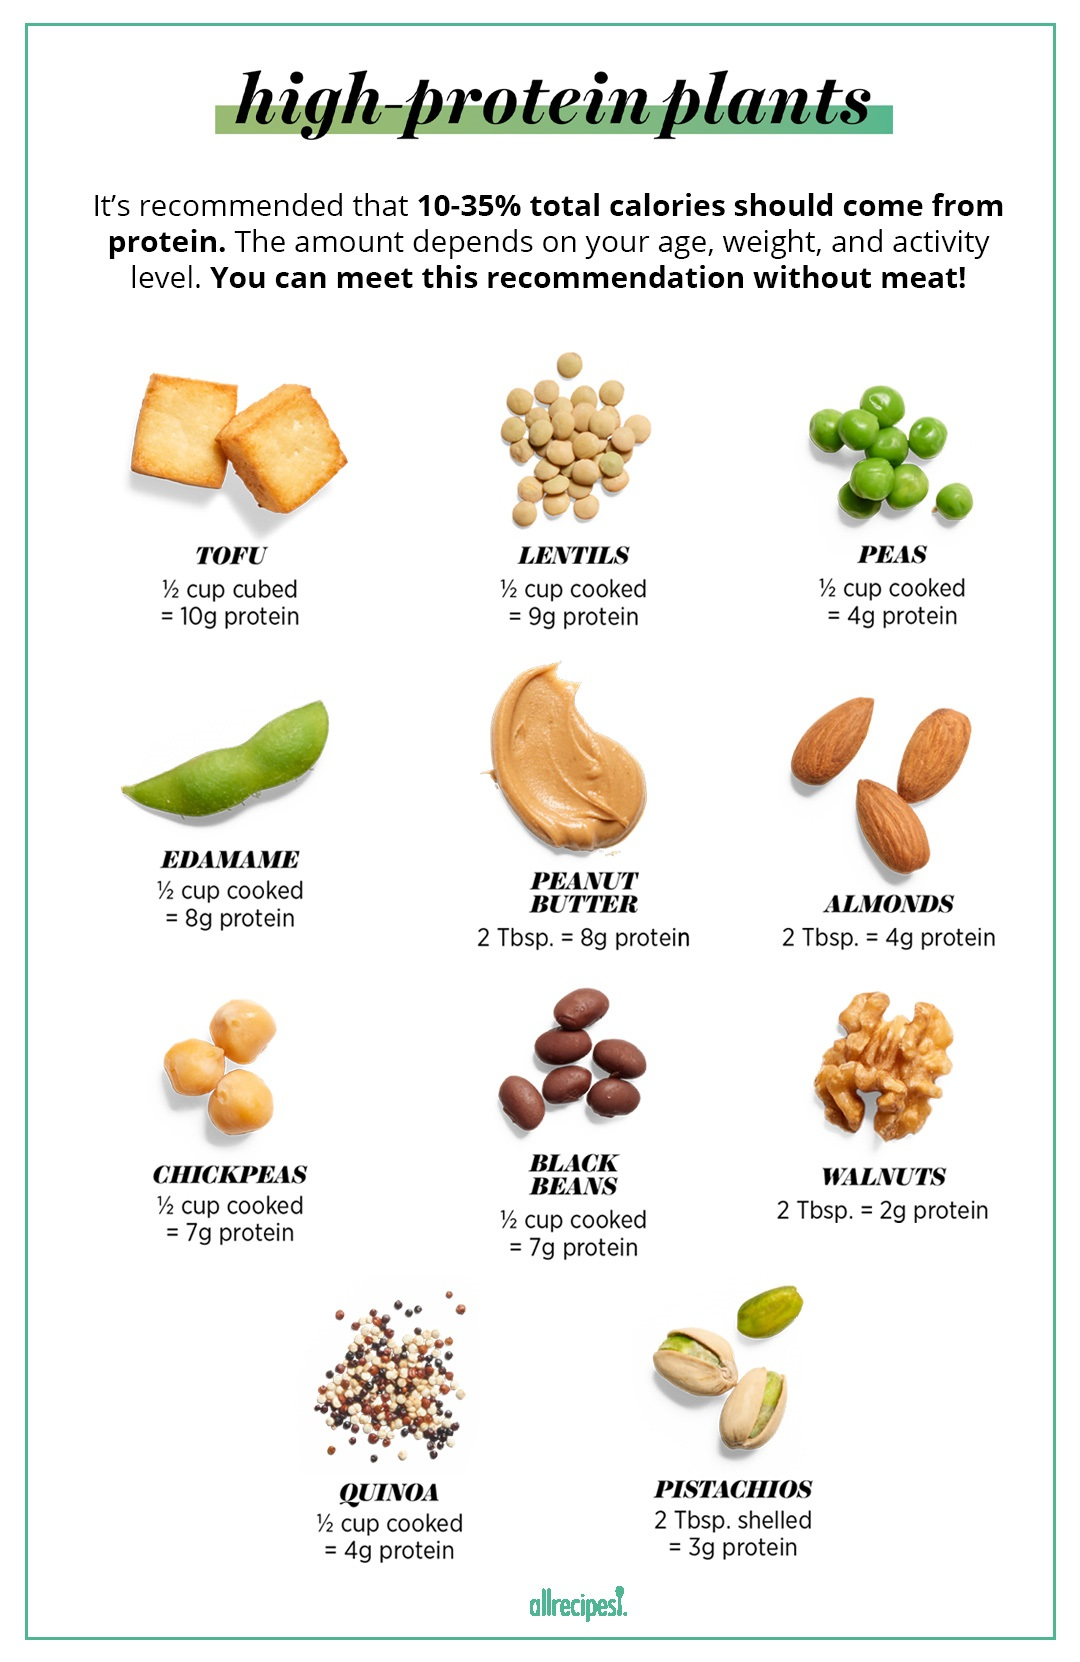 high protein plants